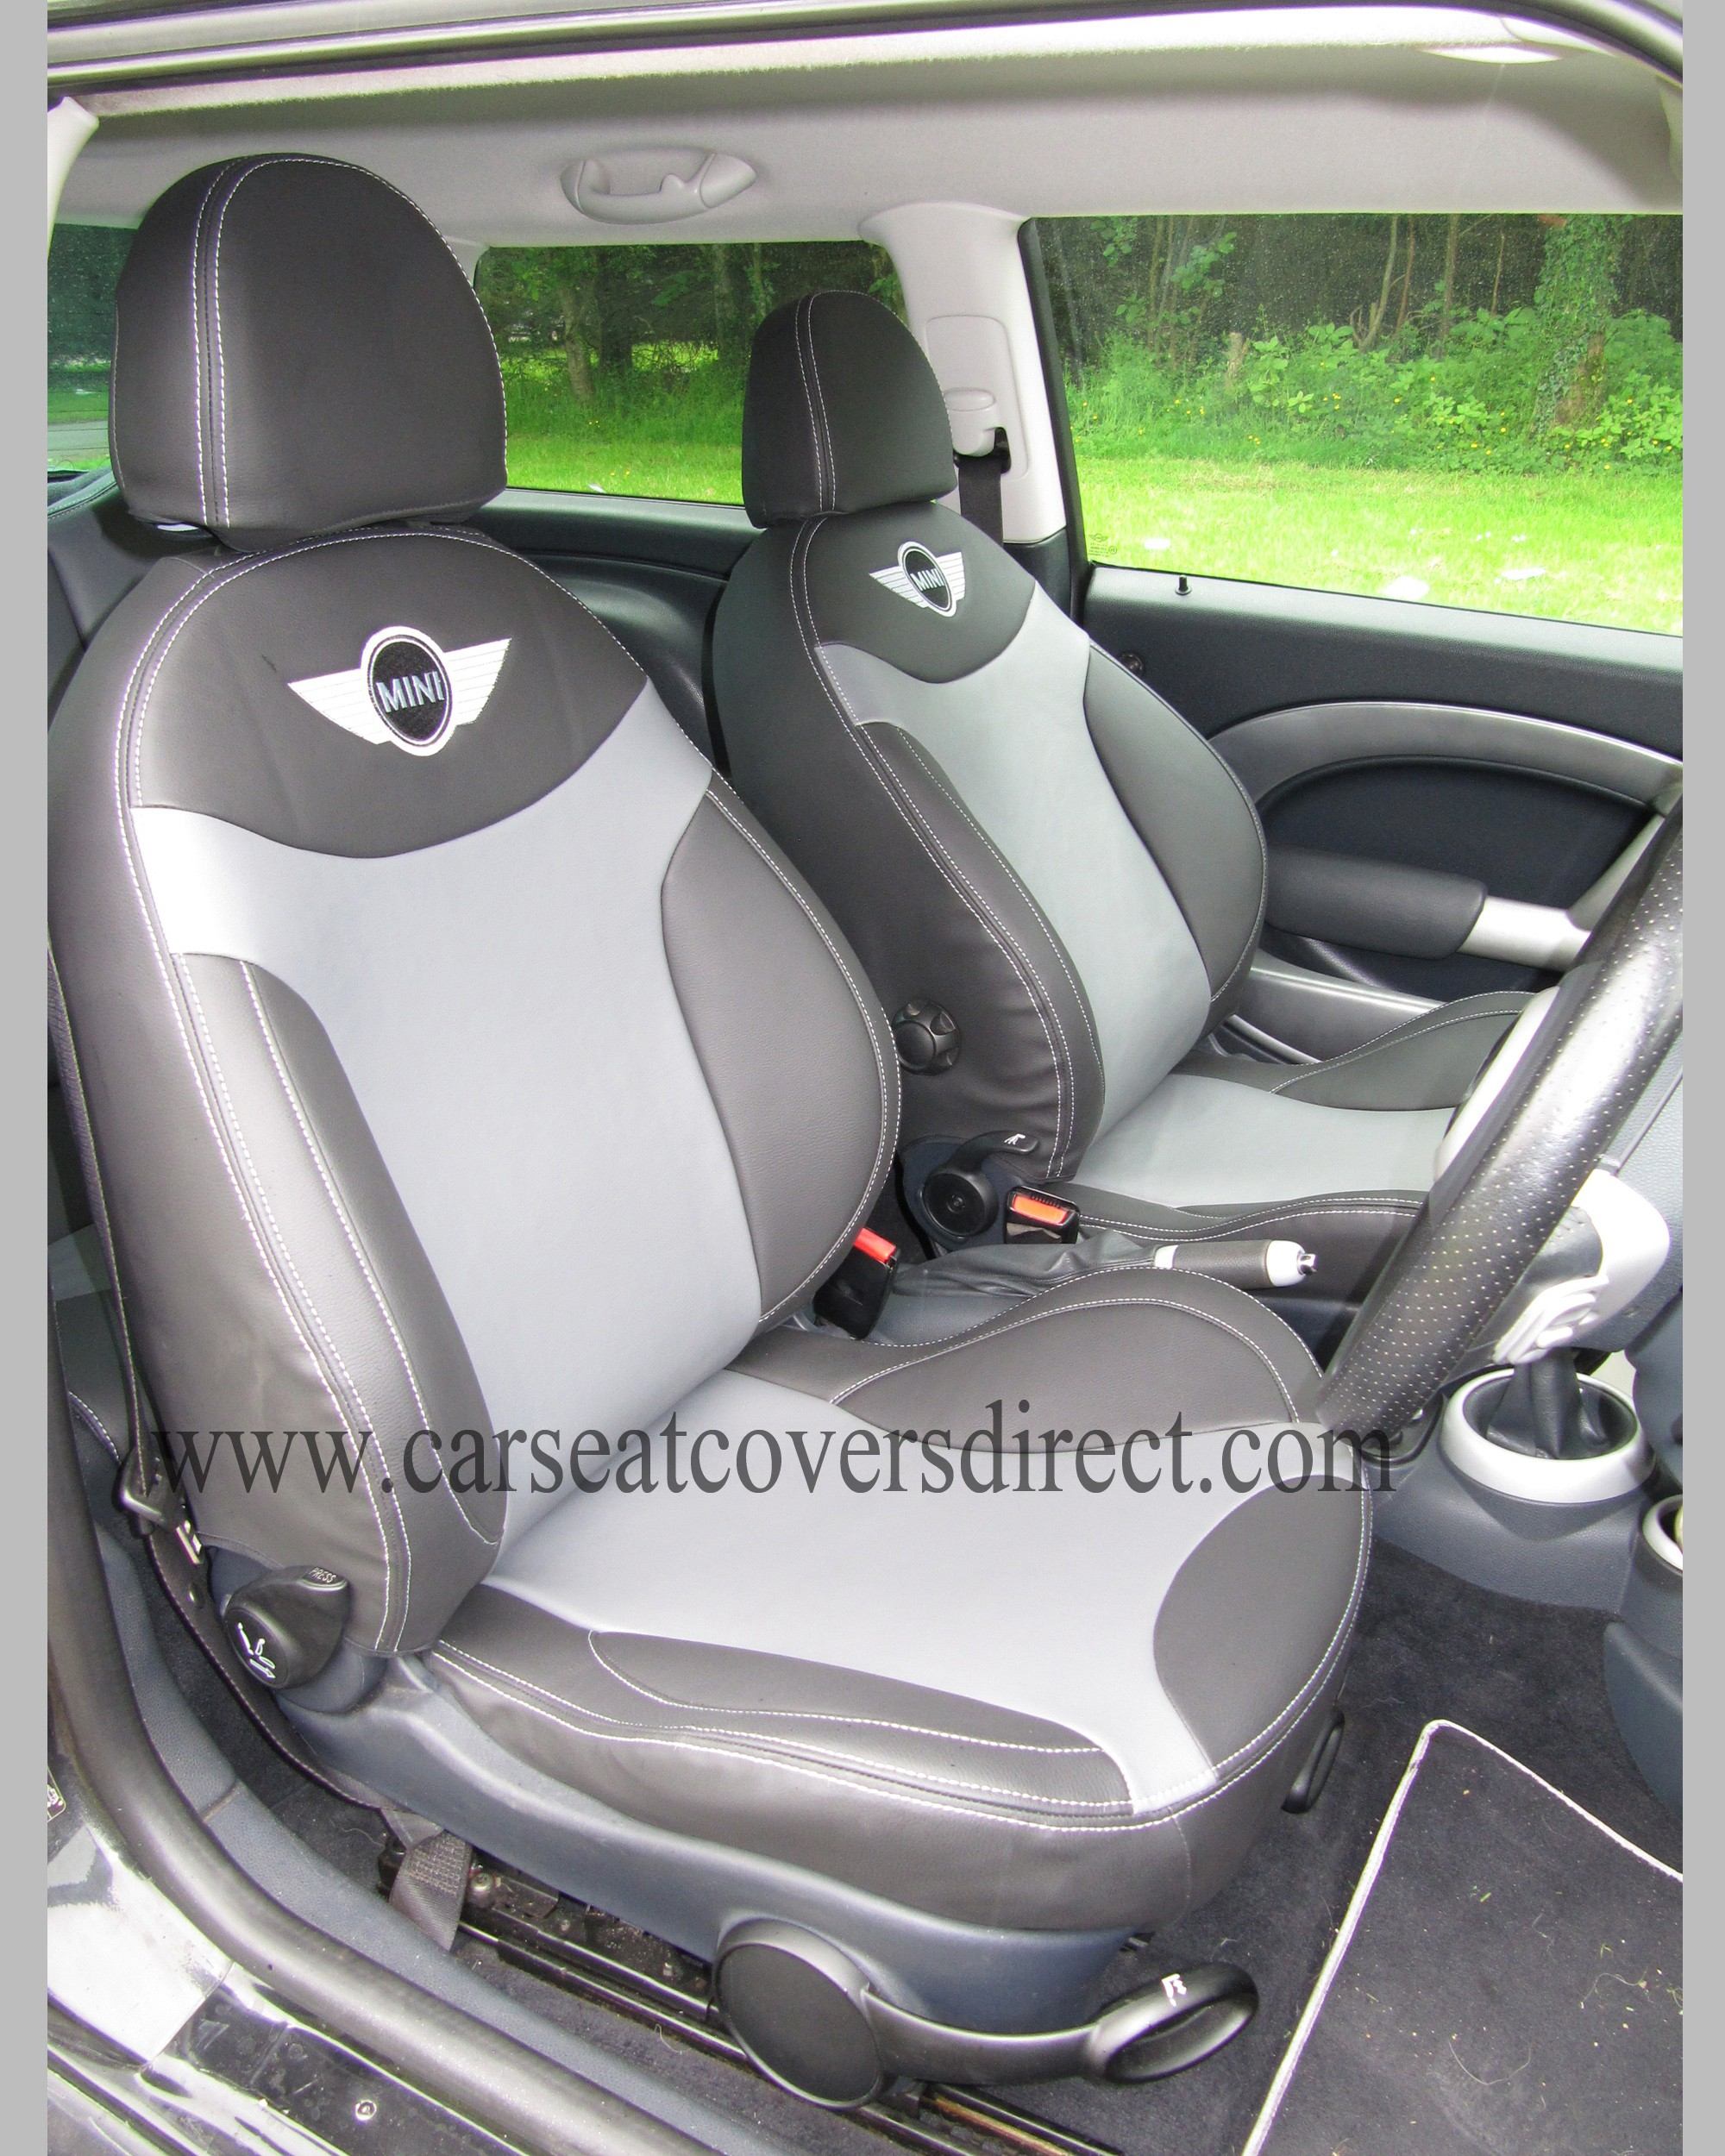 Custom MINI COOPER S Seat Covers Car Seat Covers Direct - Tailored To Your Choice